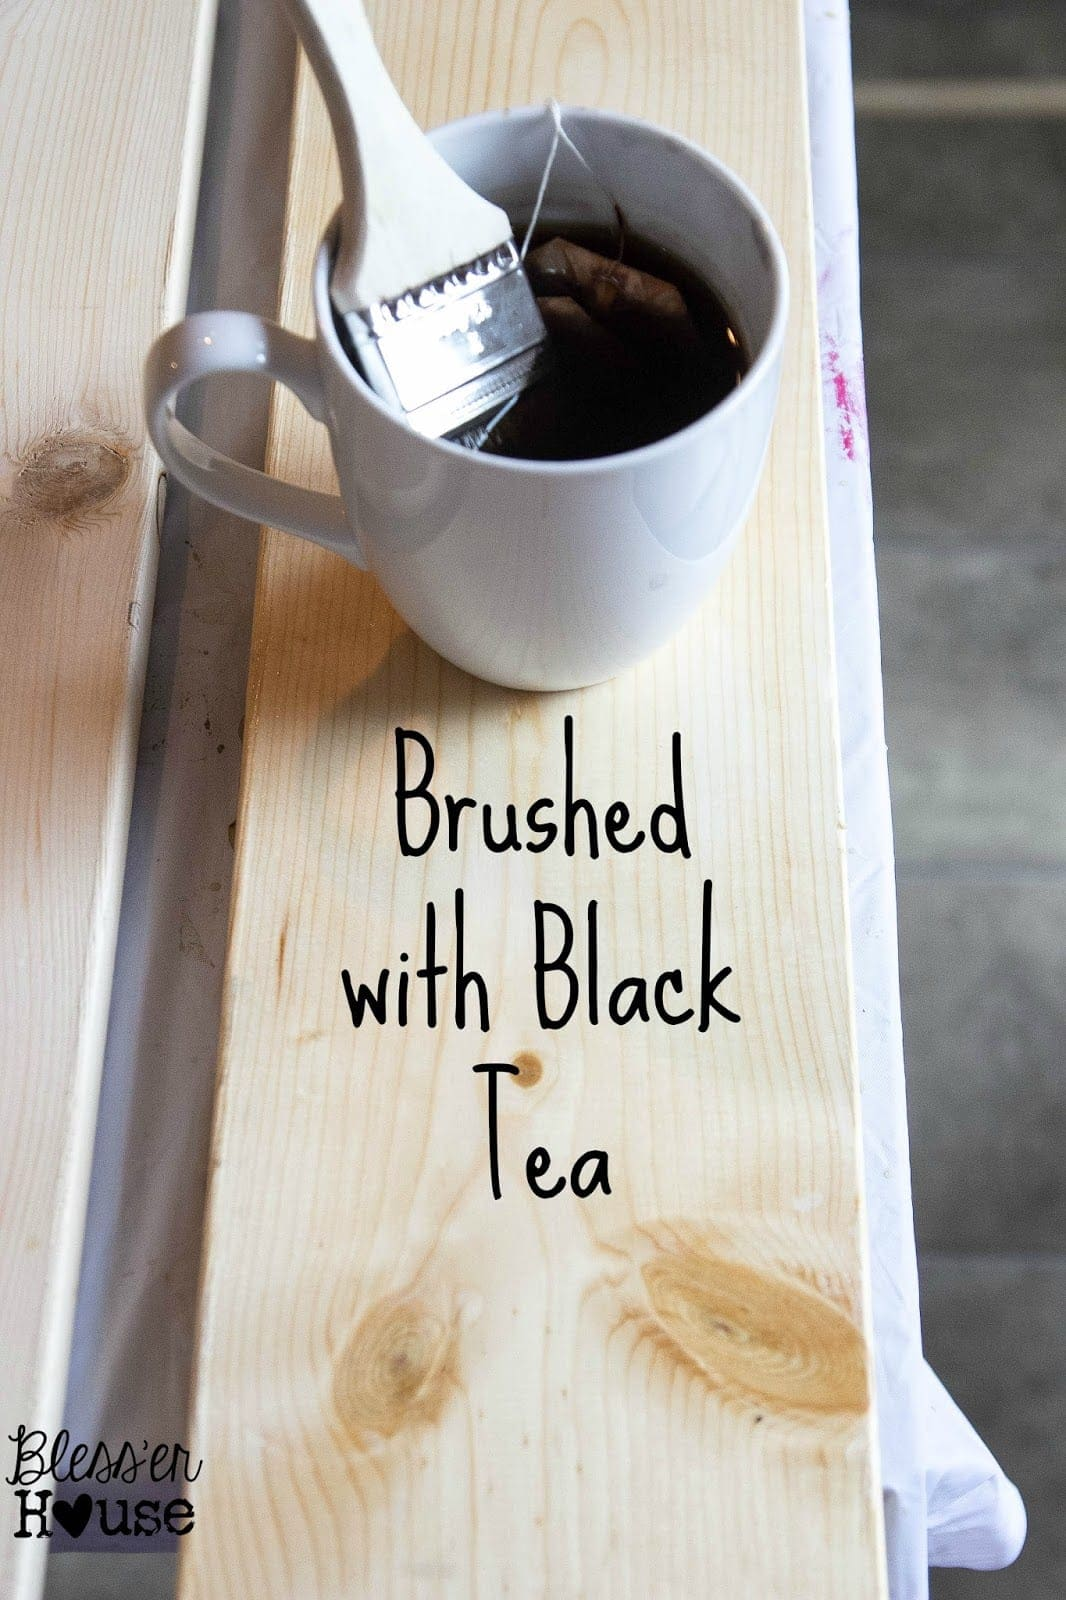 The first step in this all natural wood stain method is to brush the lumber with the black tea, steeped for over 24 hours.